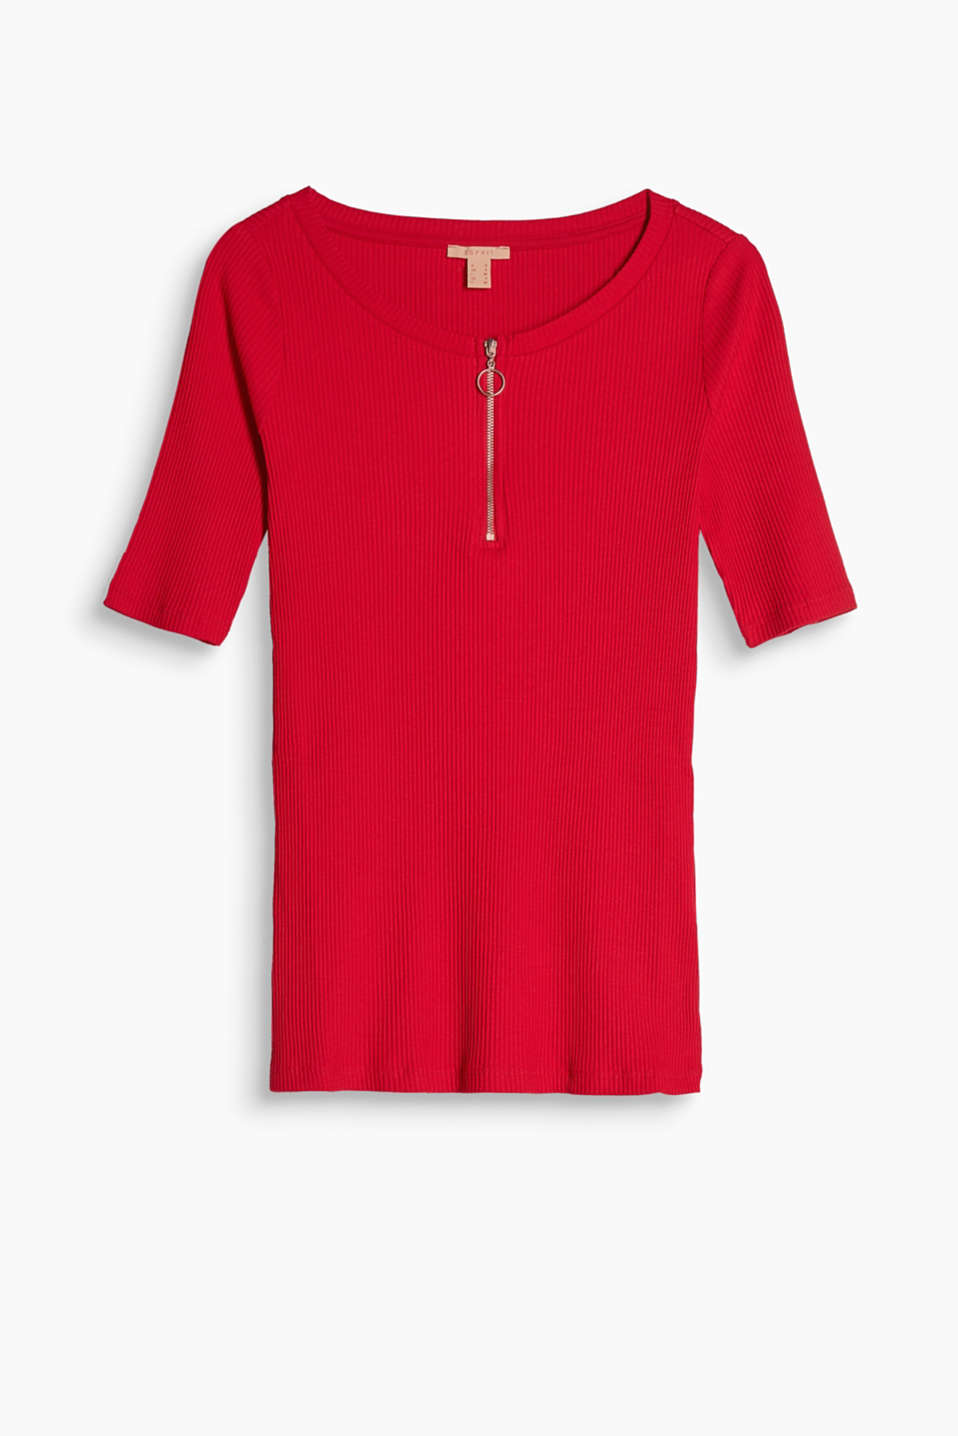 Snug, zip neck ribbed T-shirt made of comfy stretch cotton